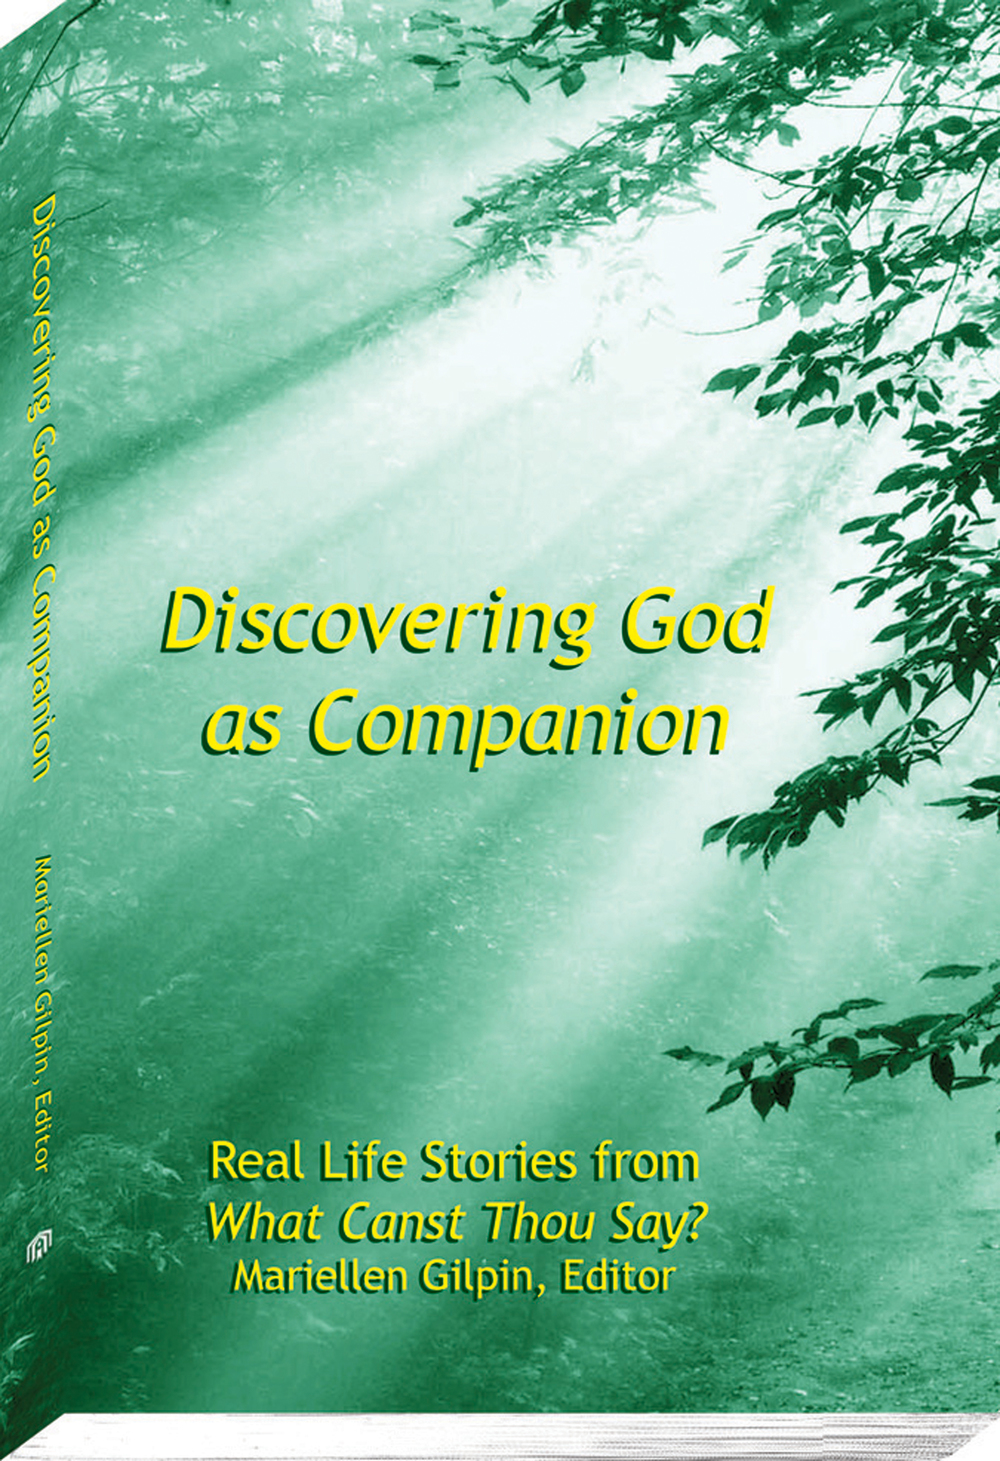 Discovering God as Companion.jpg